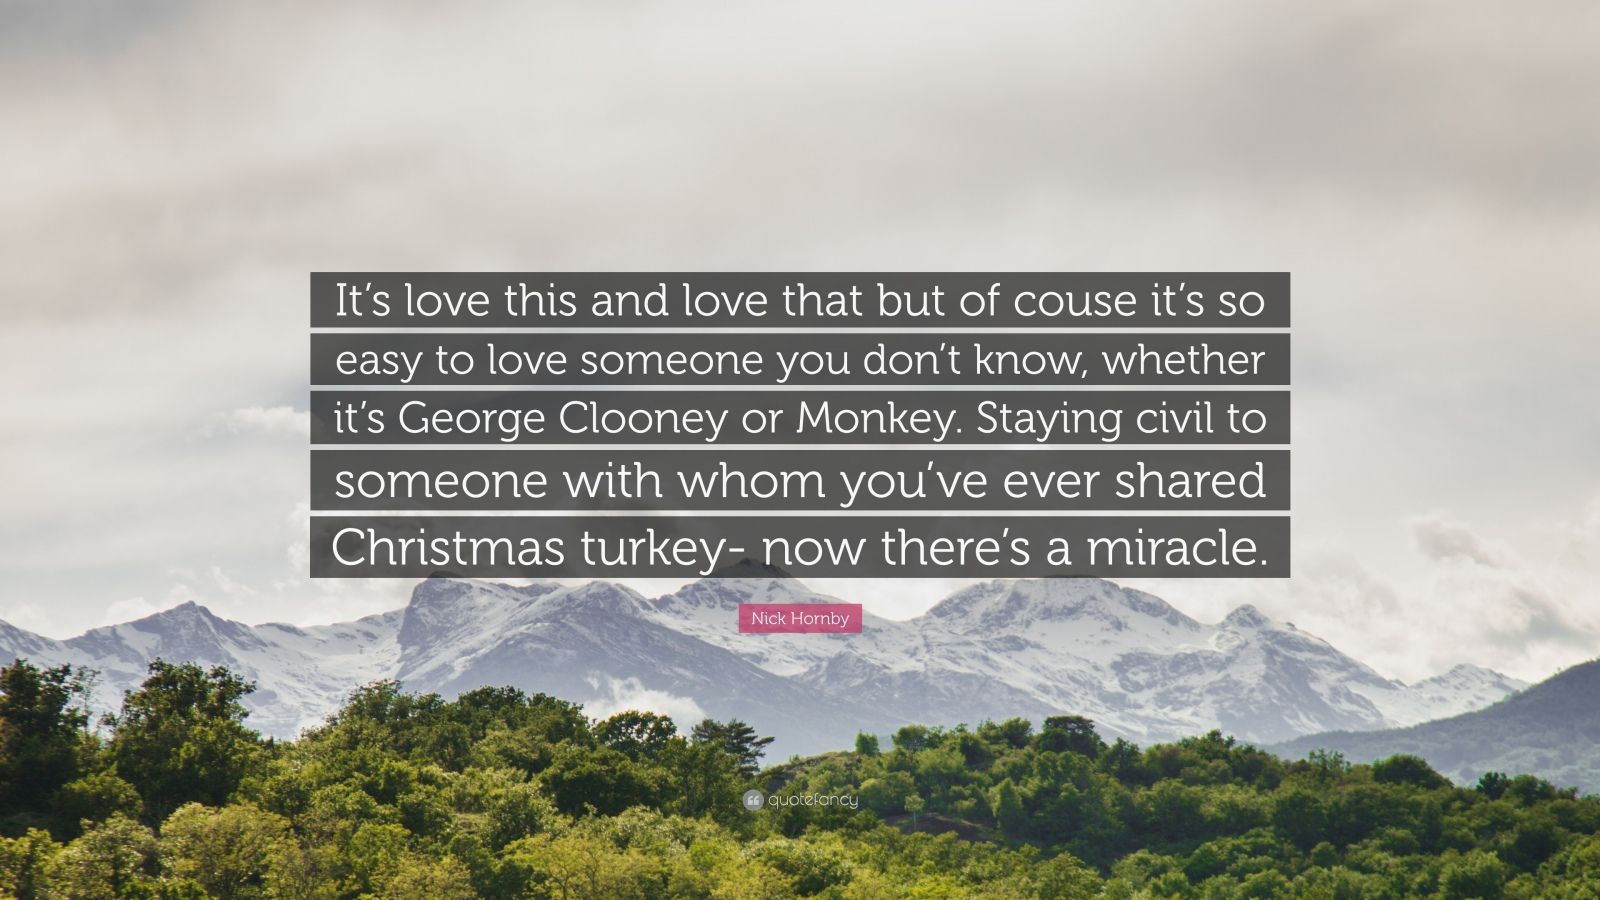 """Nick Hornby Quote: """"It's love this and love that but of couse it's so easy to love someone you don't know, whether it's George Clooney or Monkey. Staying civil to someone with whom you've ever shared Christmas turkey- now there's a miracle."""""""